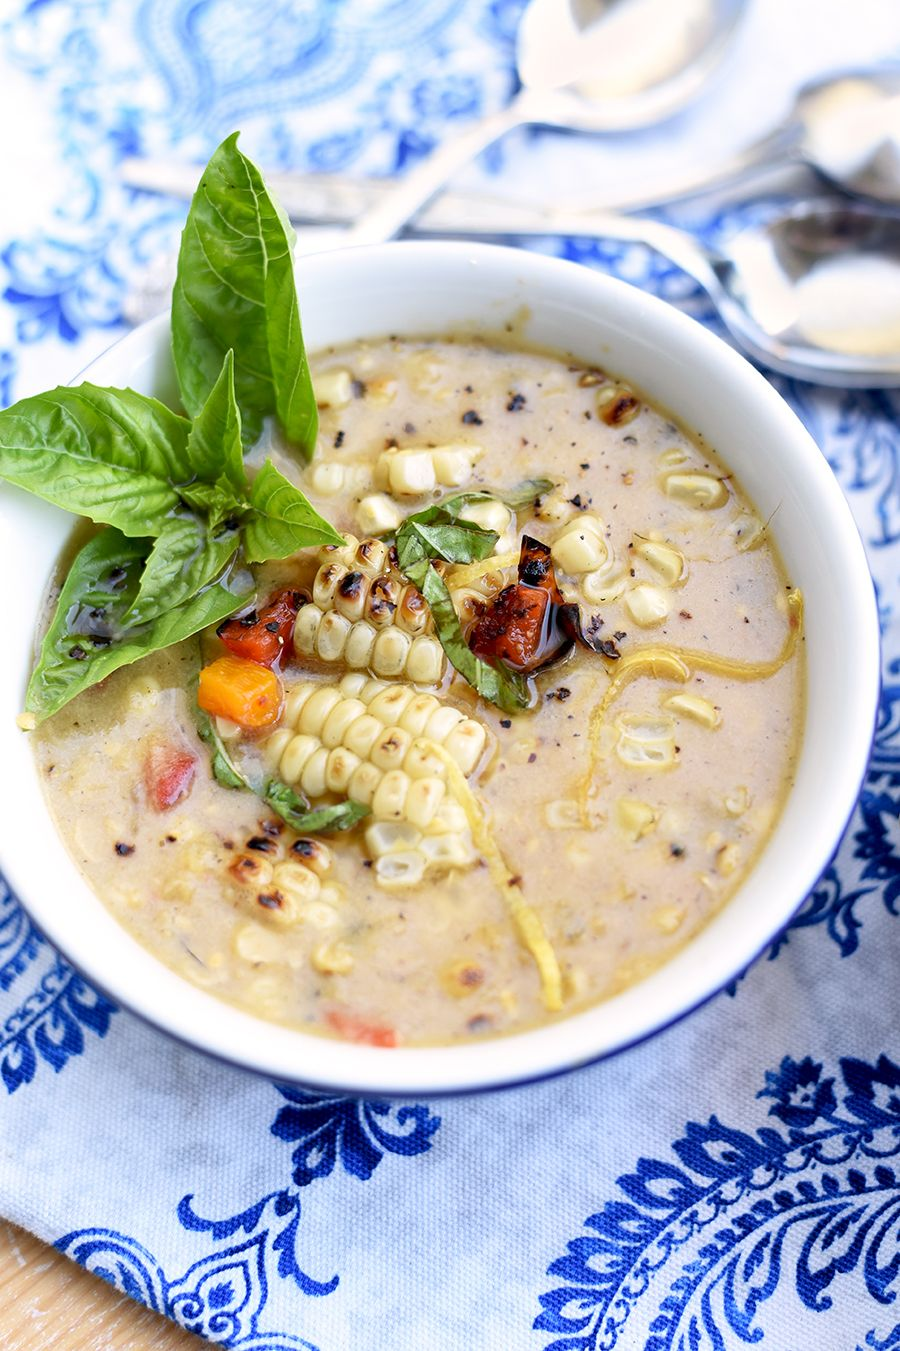 Corn Chowder Food Photography by Charity Beth Long